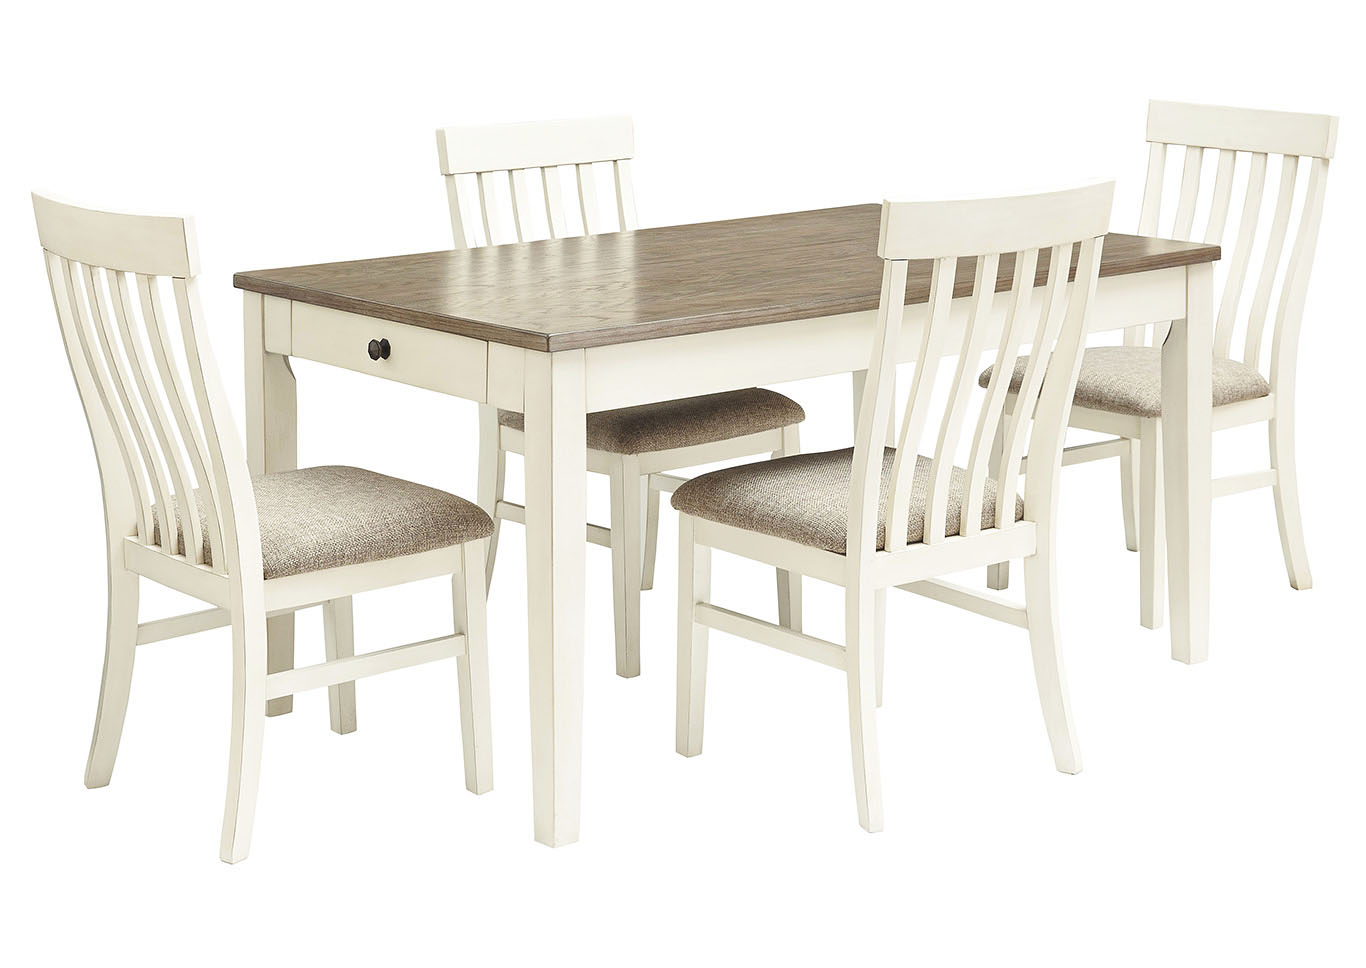 Bardilyn Dining Table w/4 Side Chairs,Benchcraft